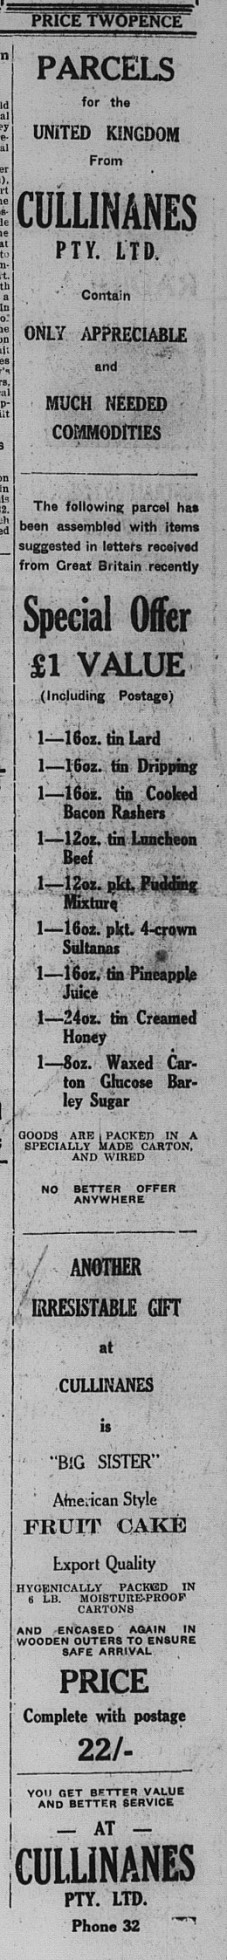 Gympie Times  Tuesday March 15, 1948 p.1 Cullinanes